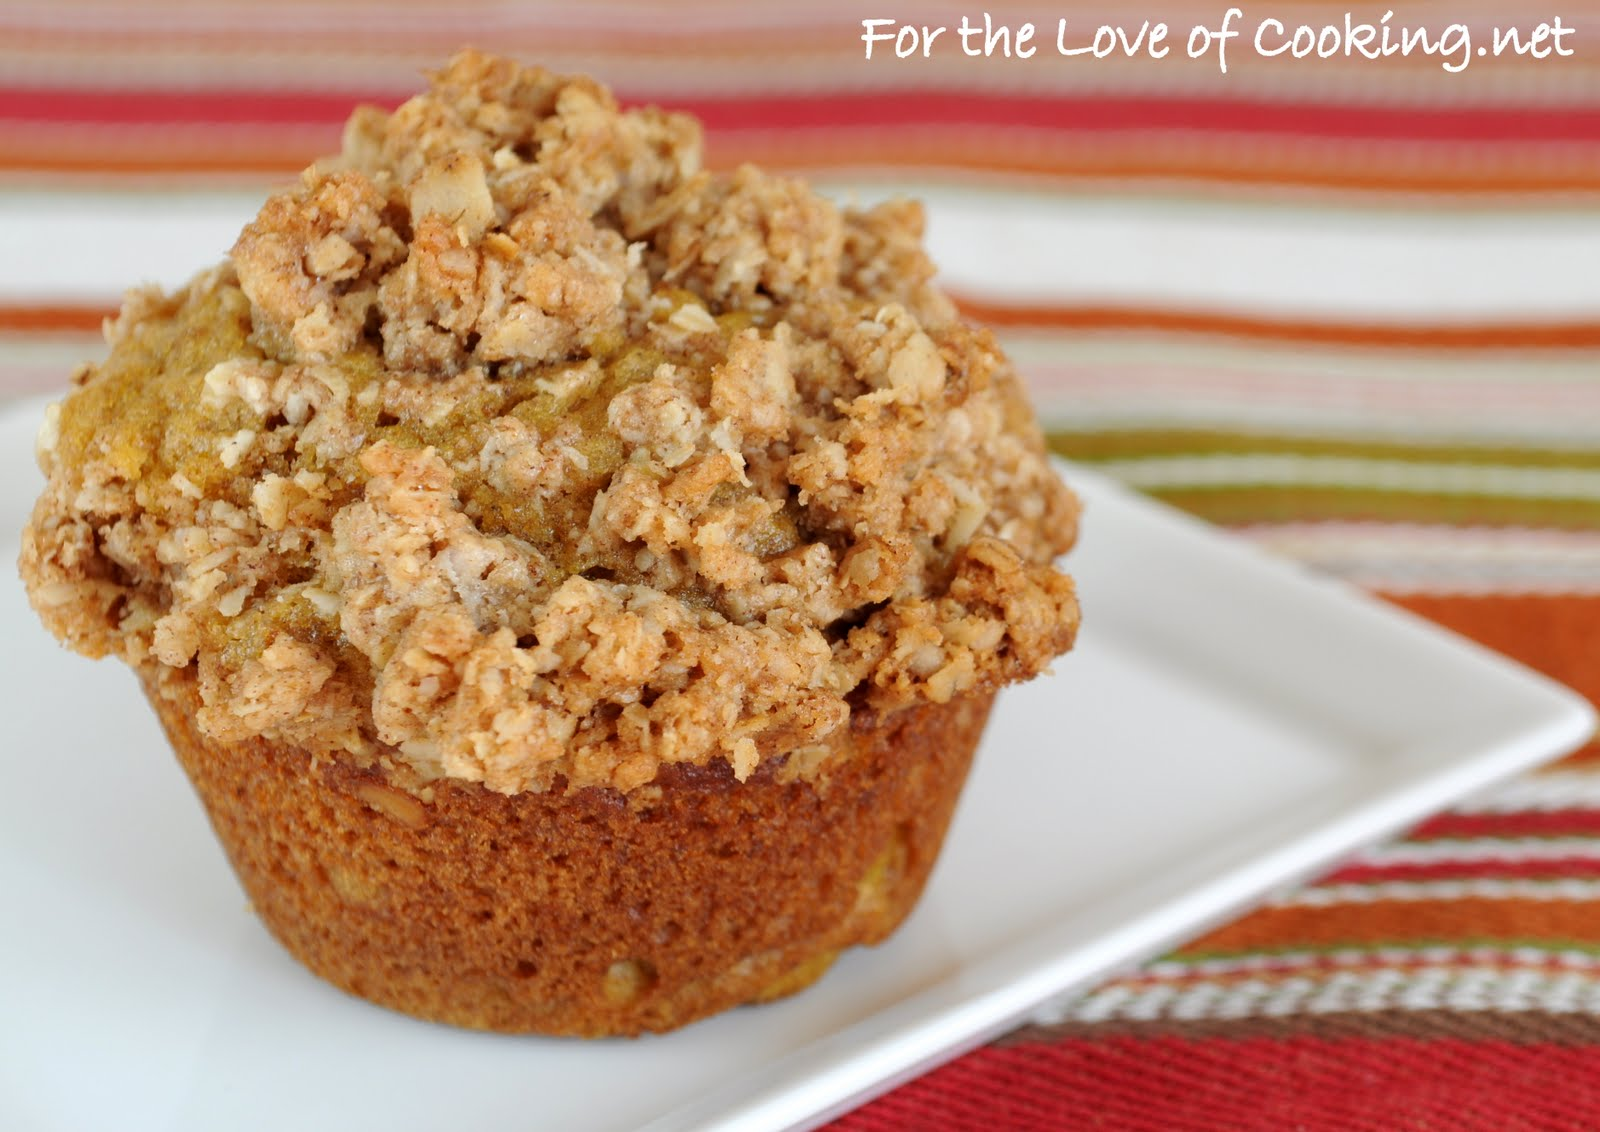 muffin tops streusel topped apple muffins 226570 jpg add some streusel ...